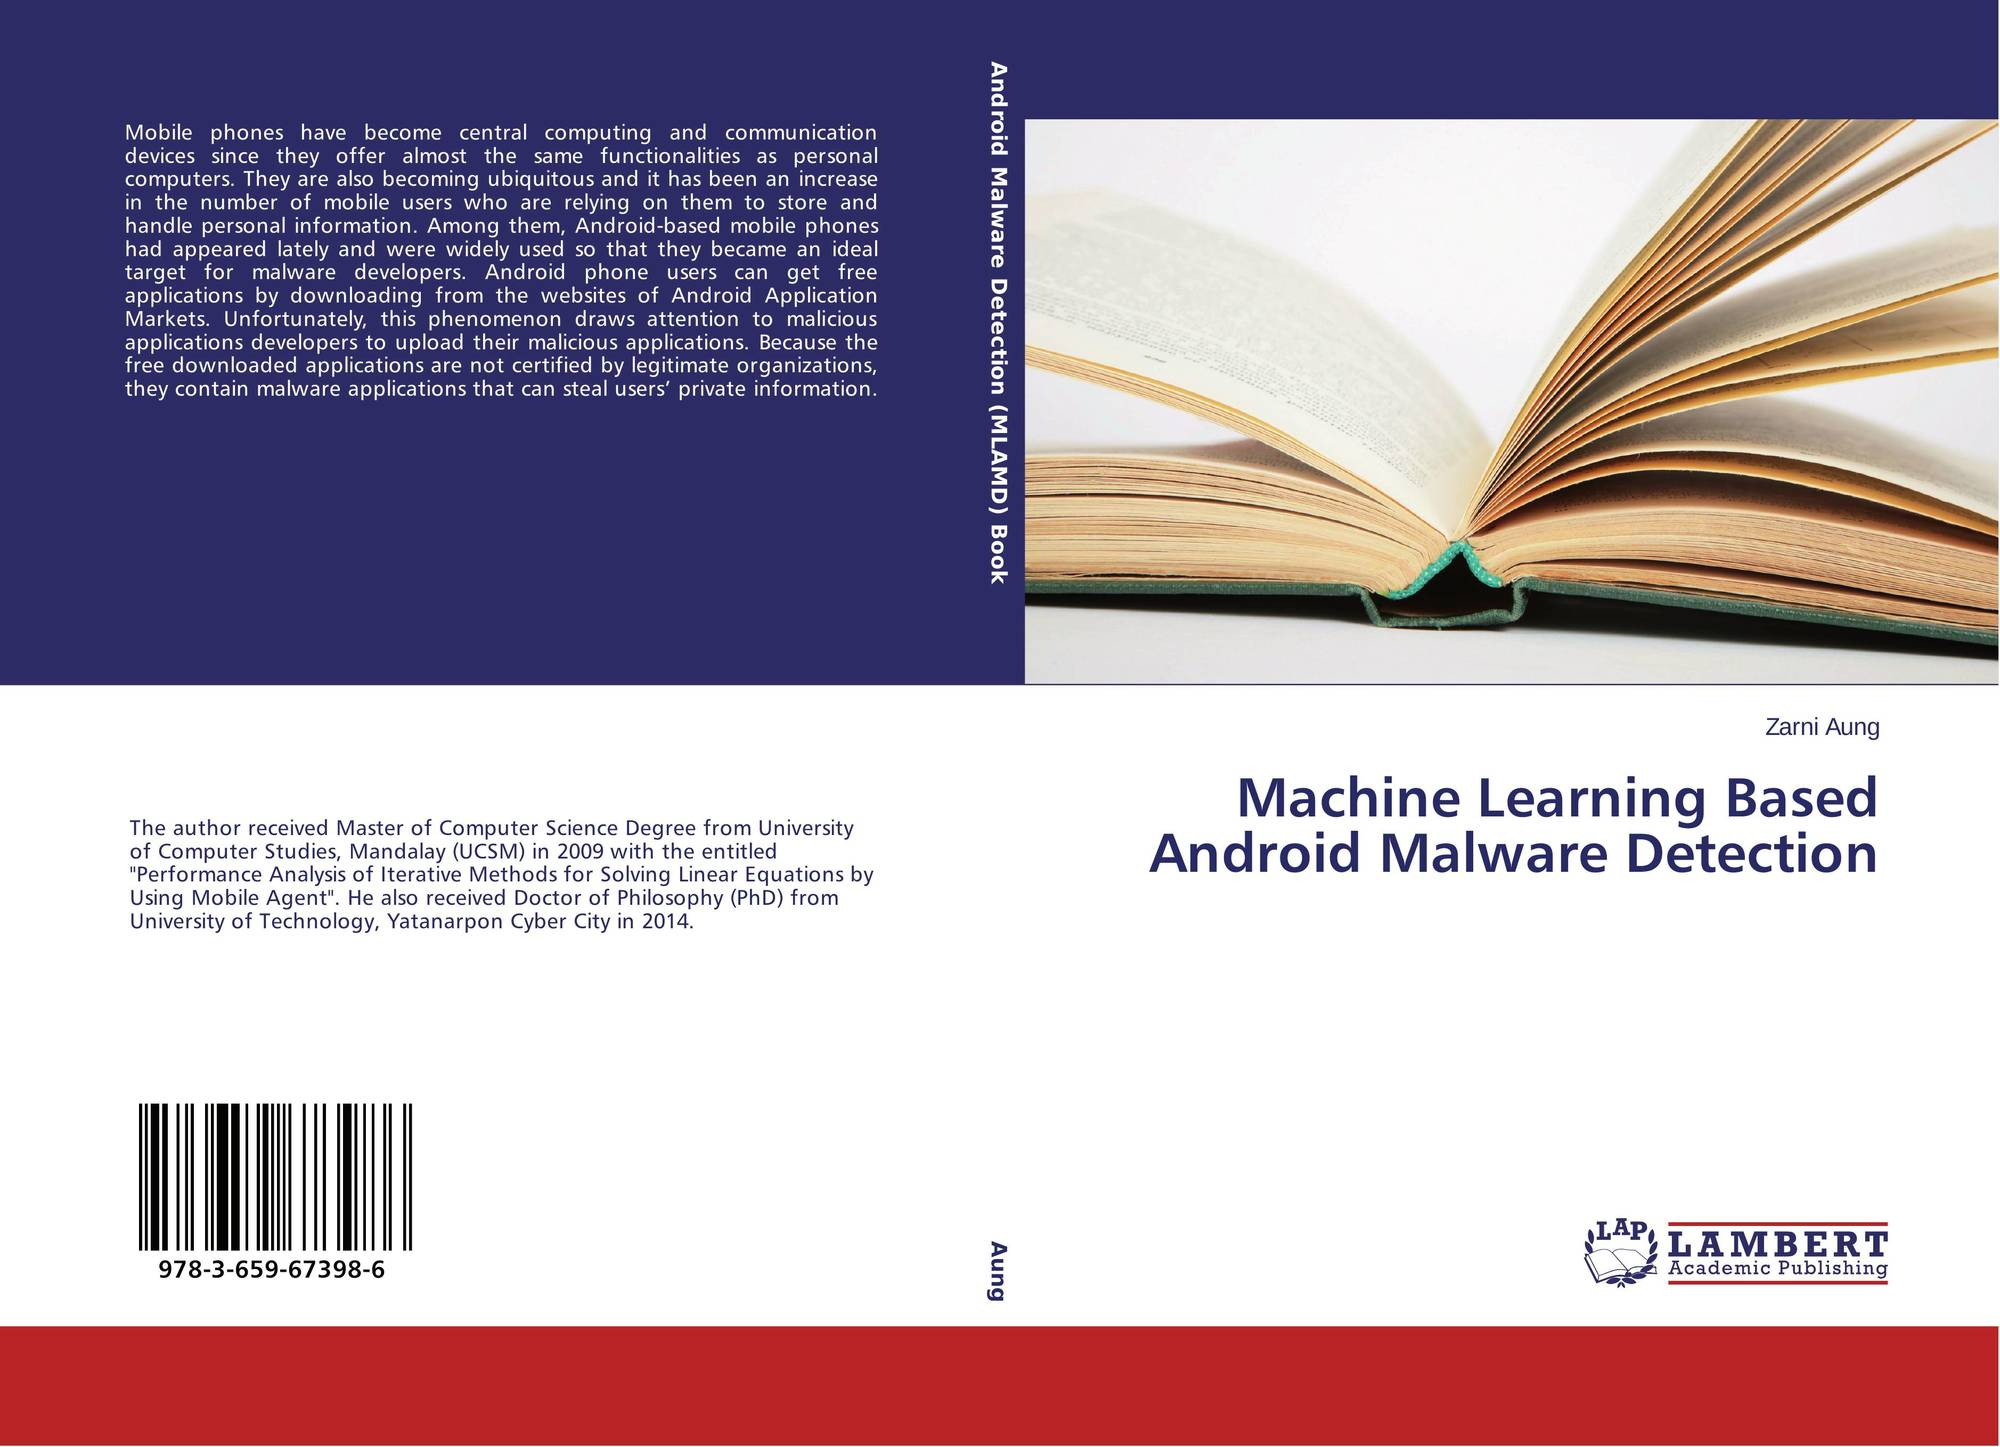 Machine Learning Based Android Malware Detection, 978-3-659